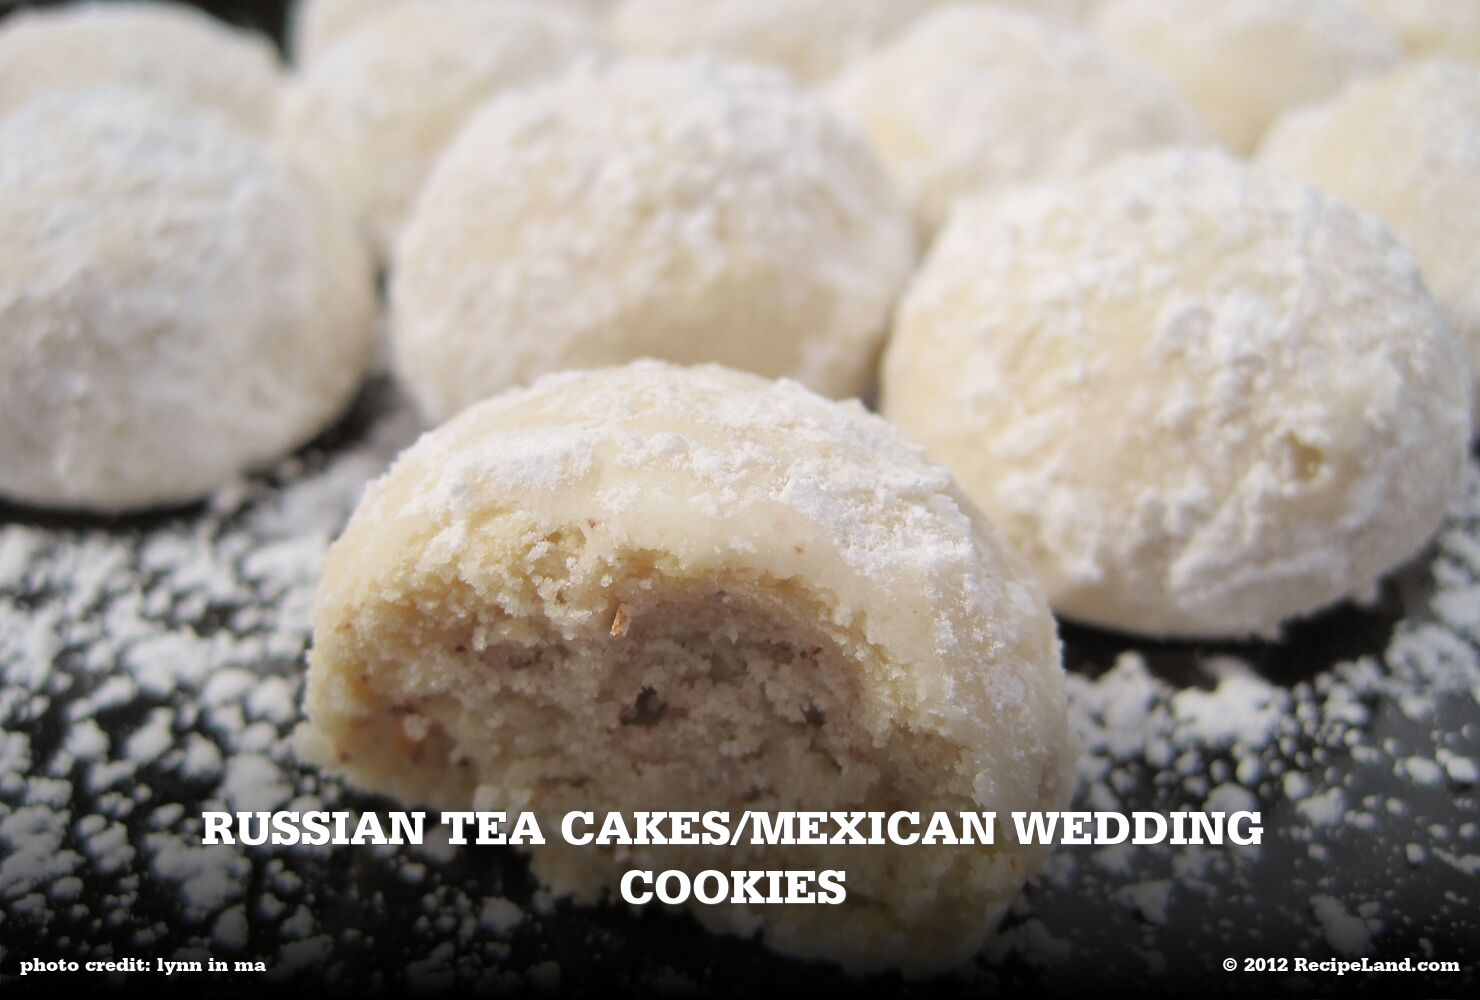 Russian Tea Cakes/Mexican Wedding Cookies